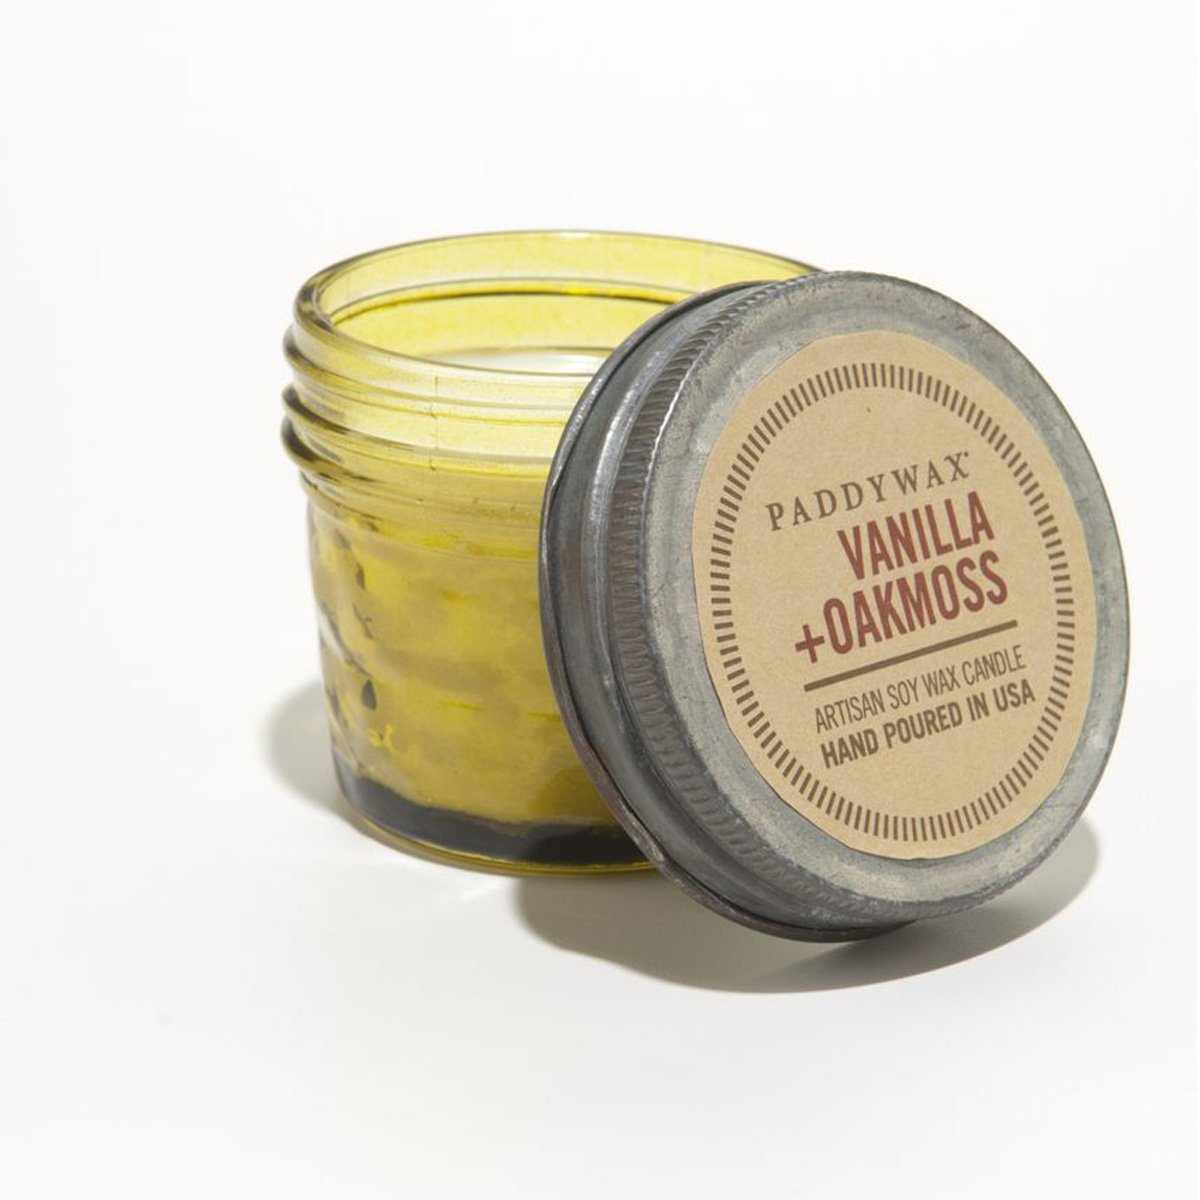 Paddywax Relish 3 oz Glass Jar Candle Vanilla & Oakmoss